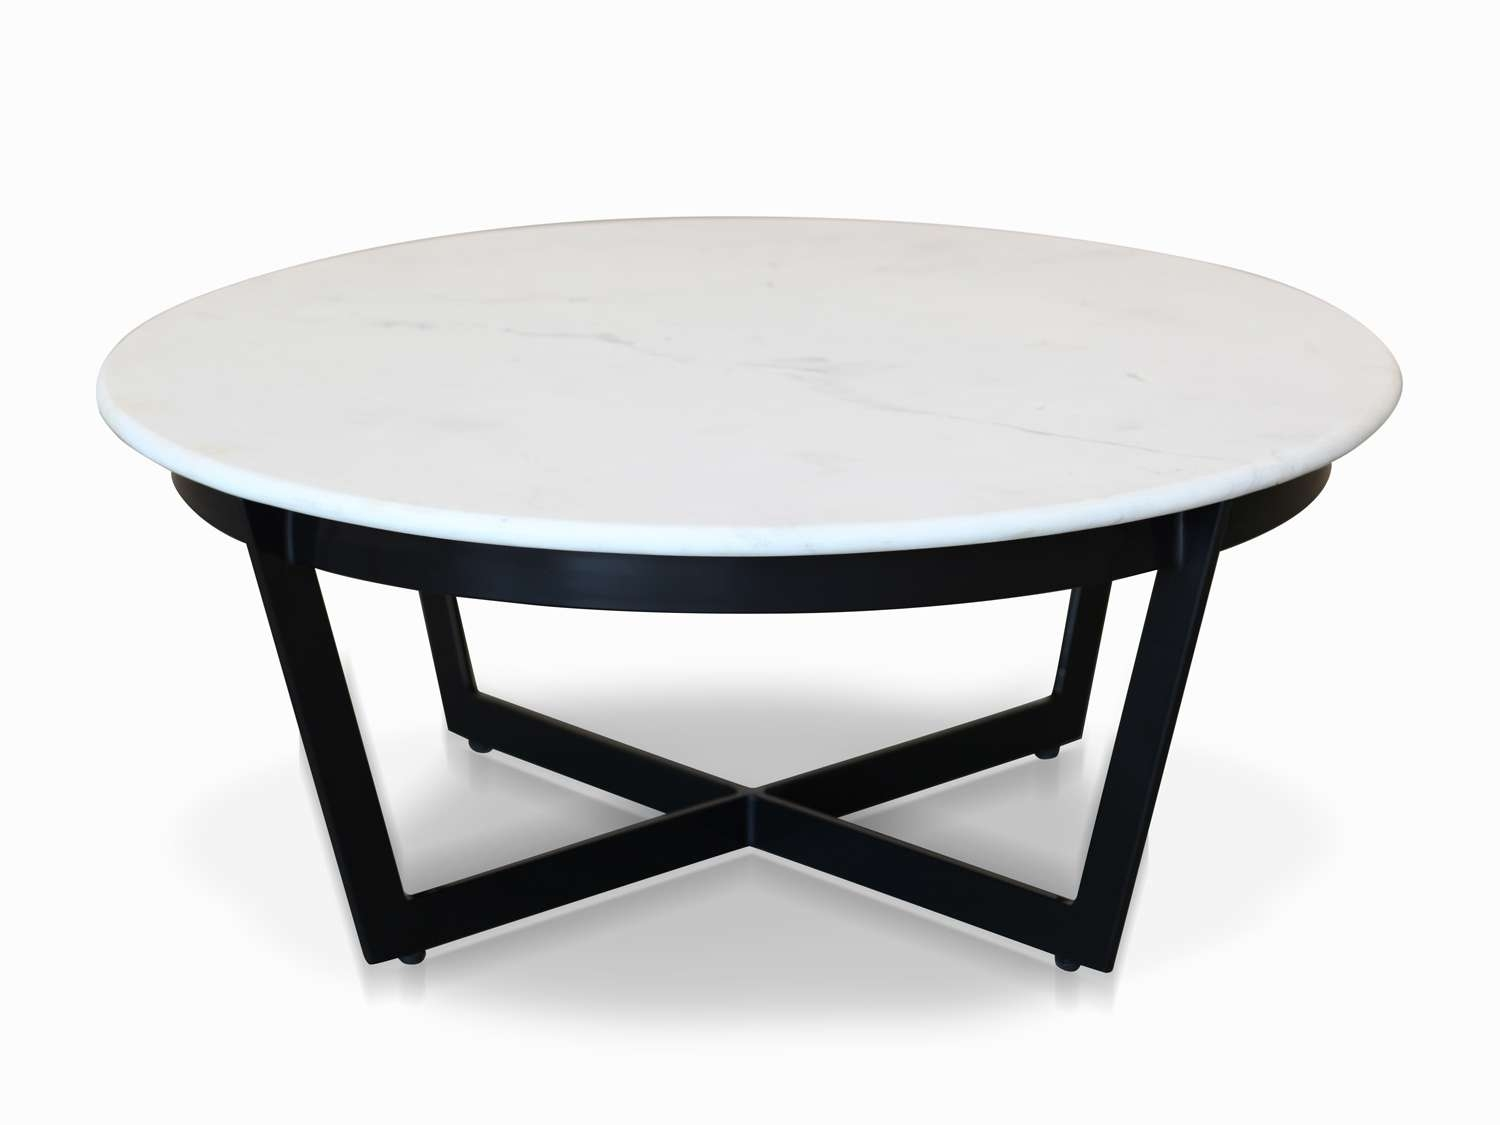 Coffee Table : Coffee Table Round Marble Carrara White Tableround Throughout Most Current White Marble Coffee Tables (View 8 of 20)